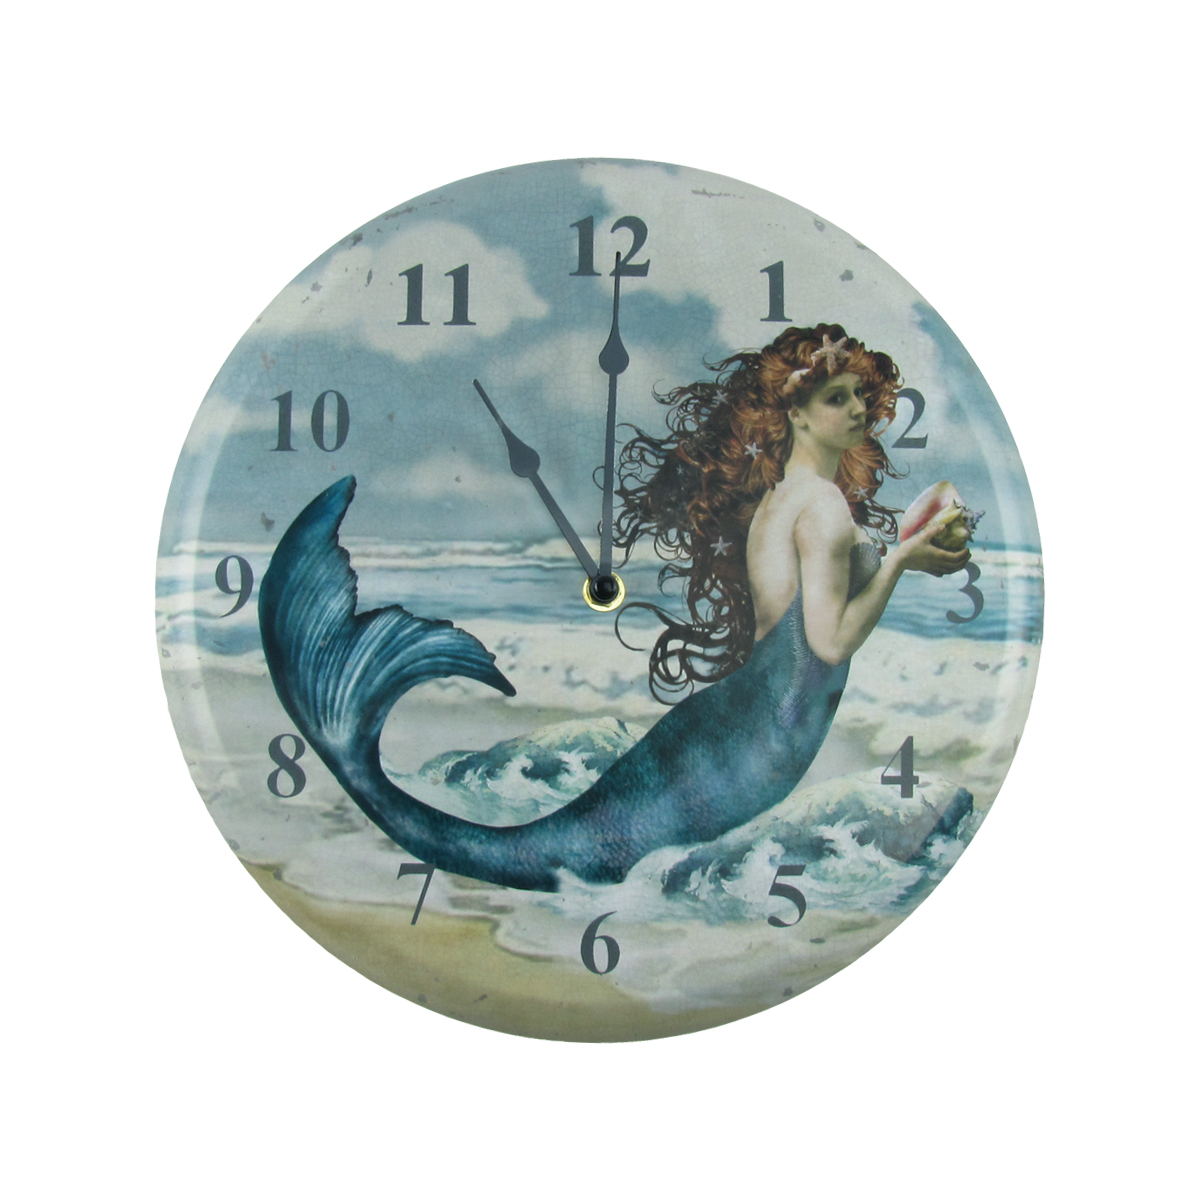 Distressed Look Mermaid Wall Clock Nautical Beach House Coastal Home Ocean Decor